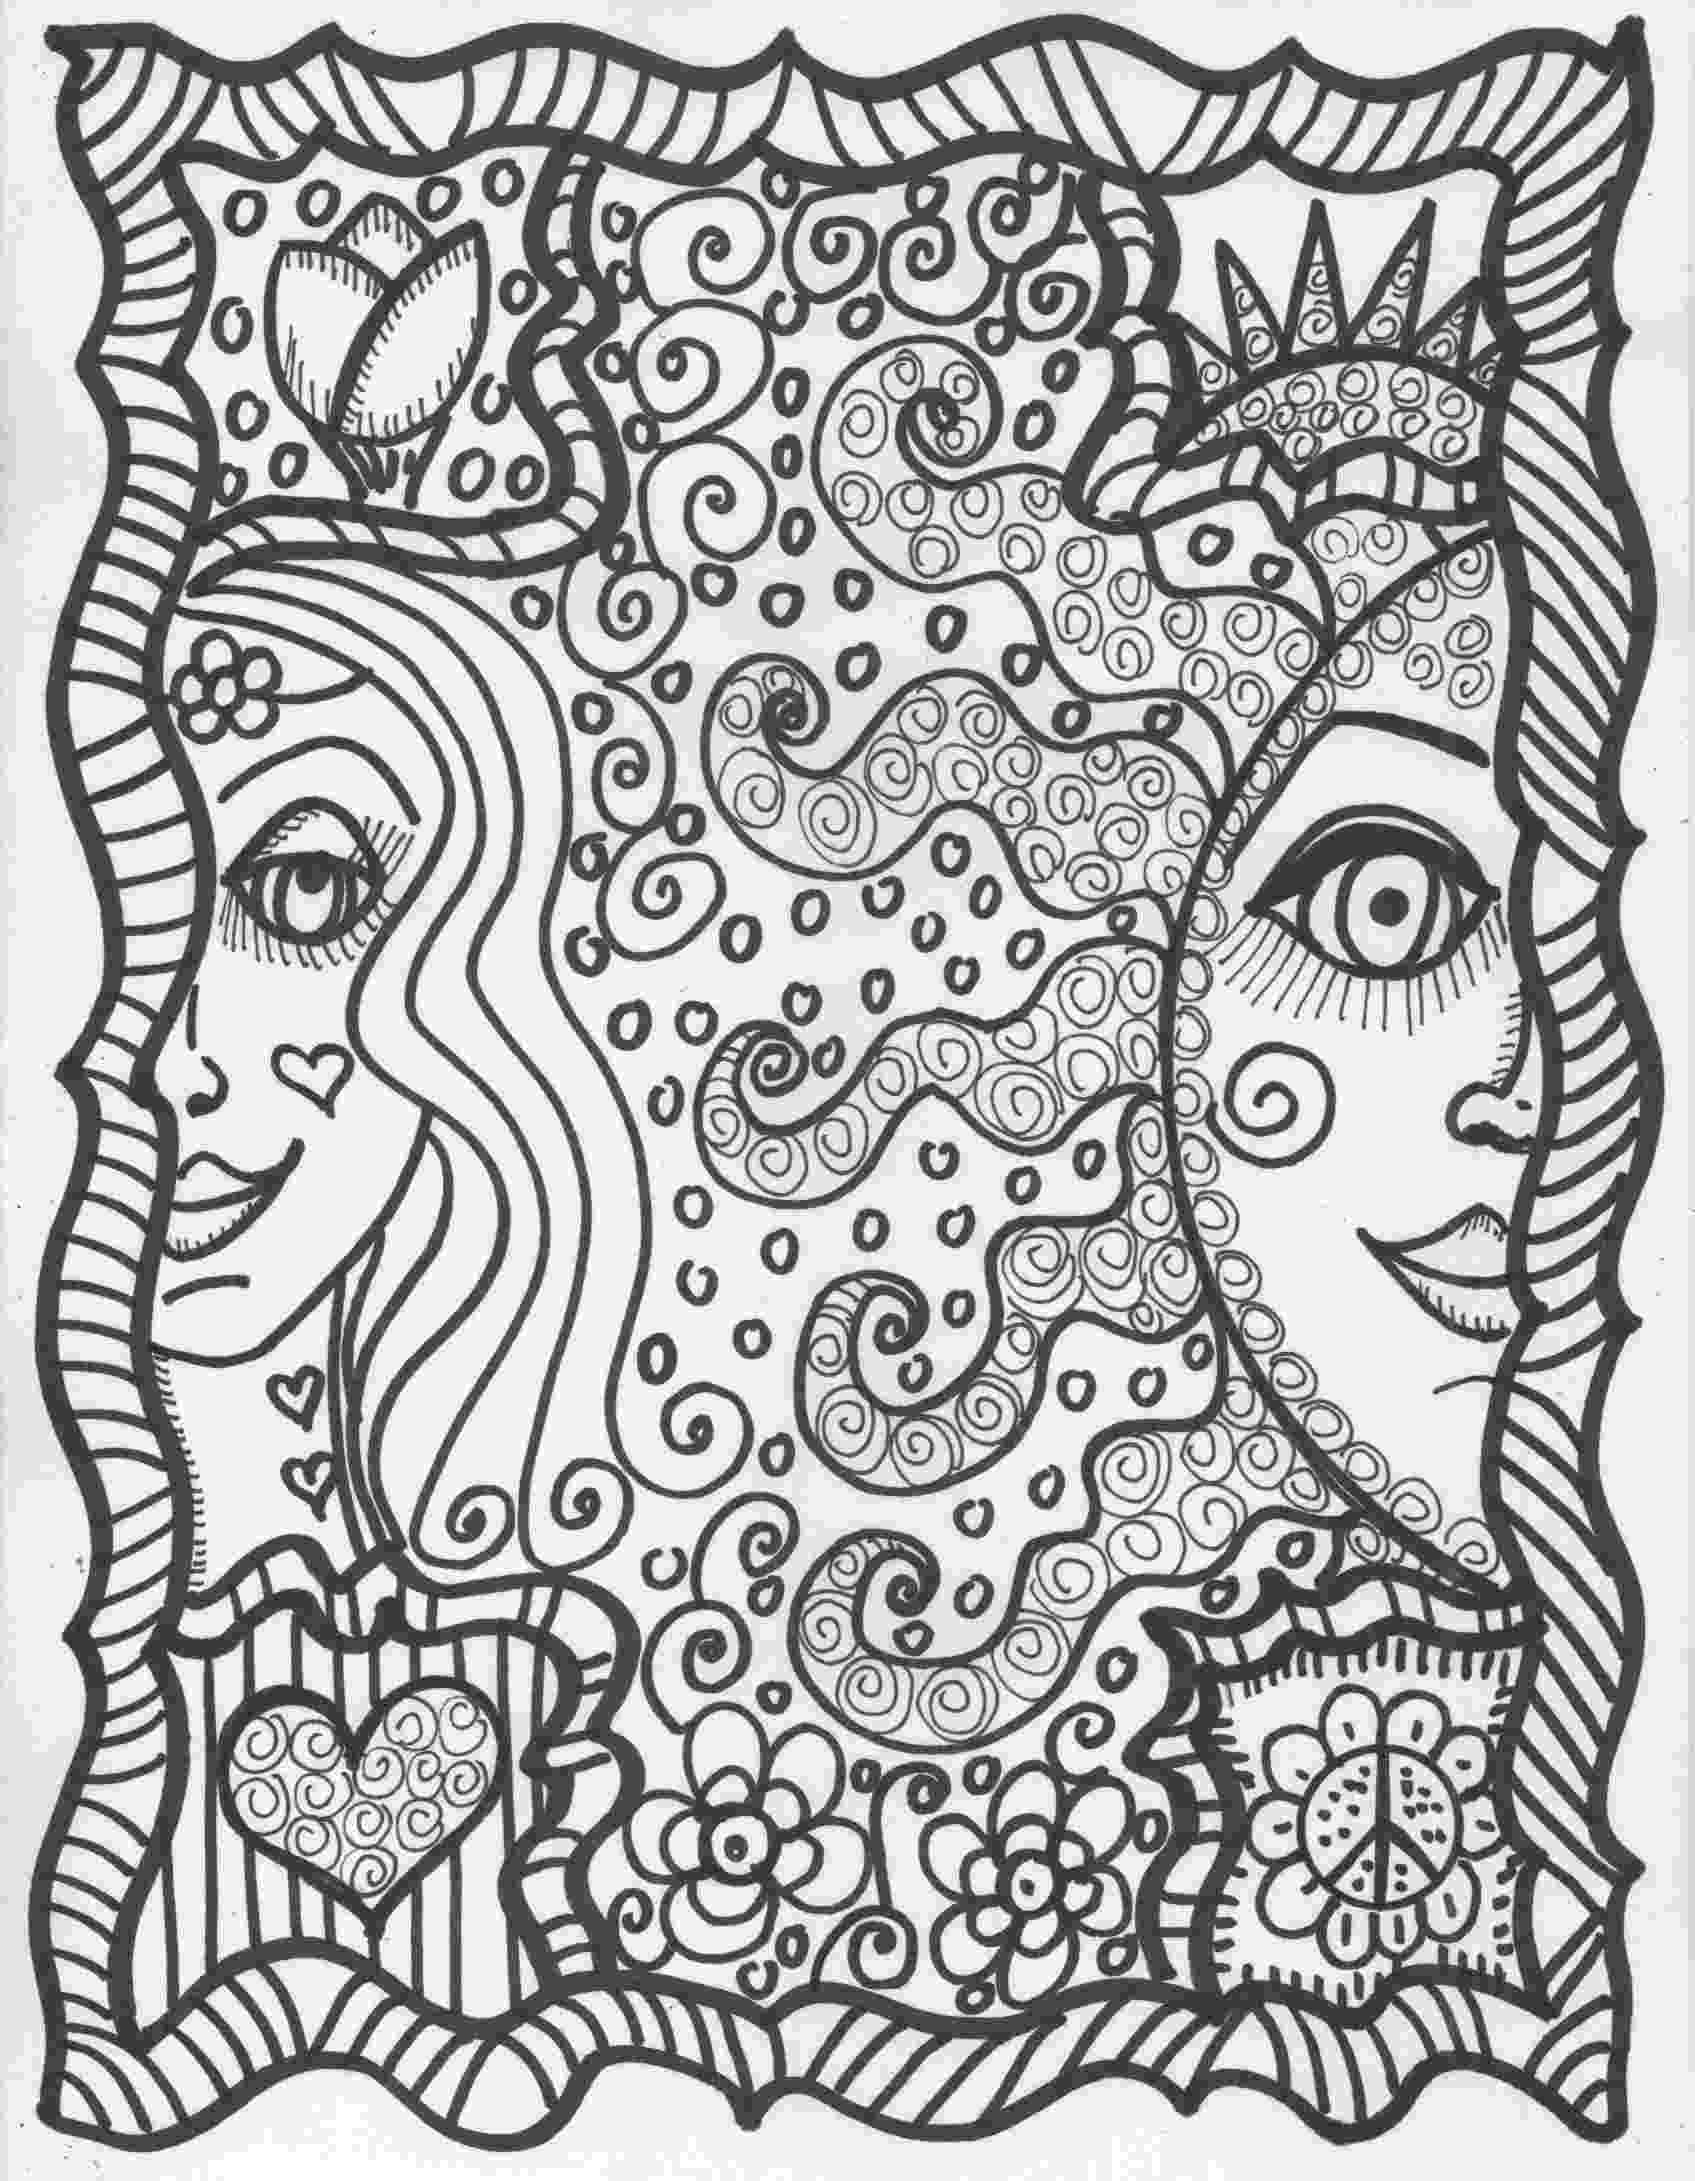 hippie coloring sheets peace love and tattoos coloring book hippie art sheets coloring hippie